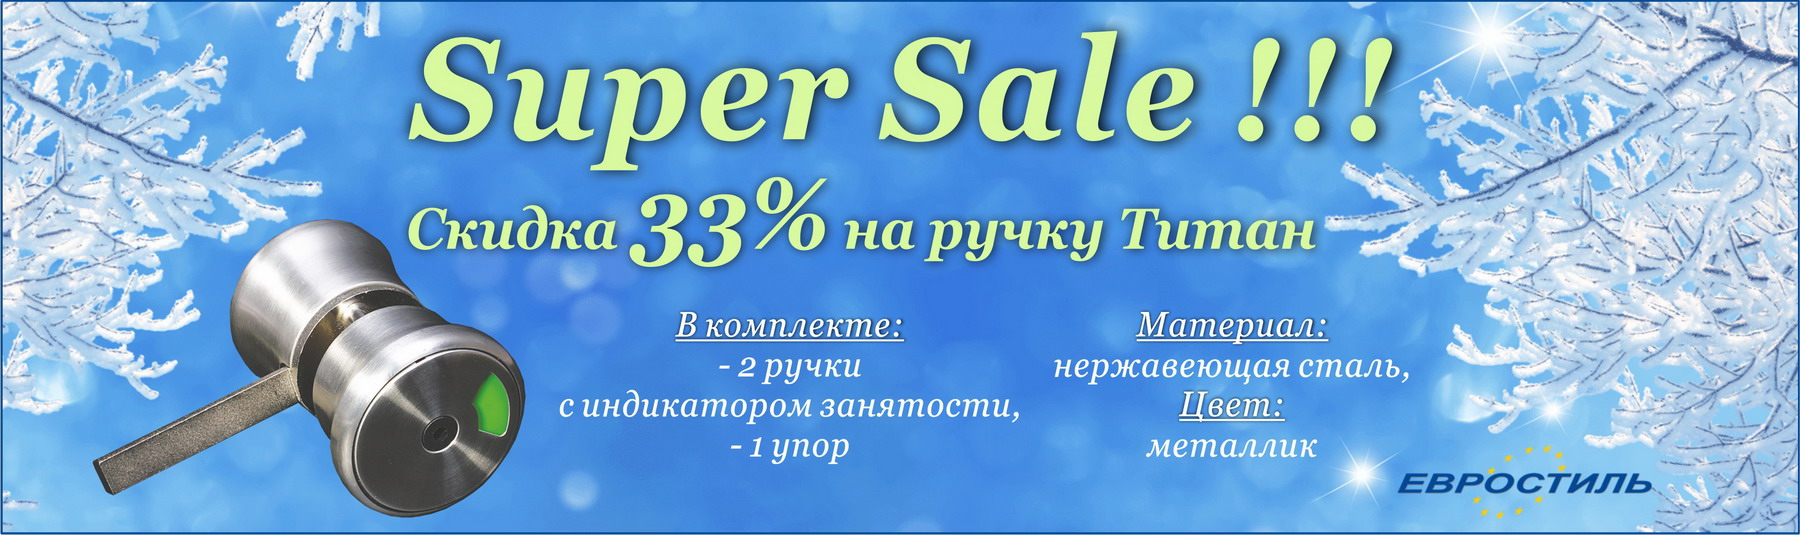 Super sale titan